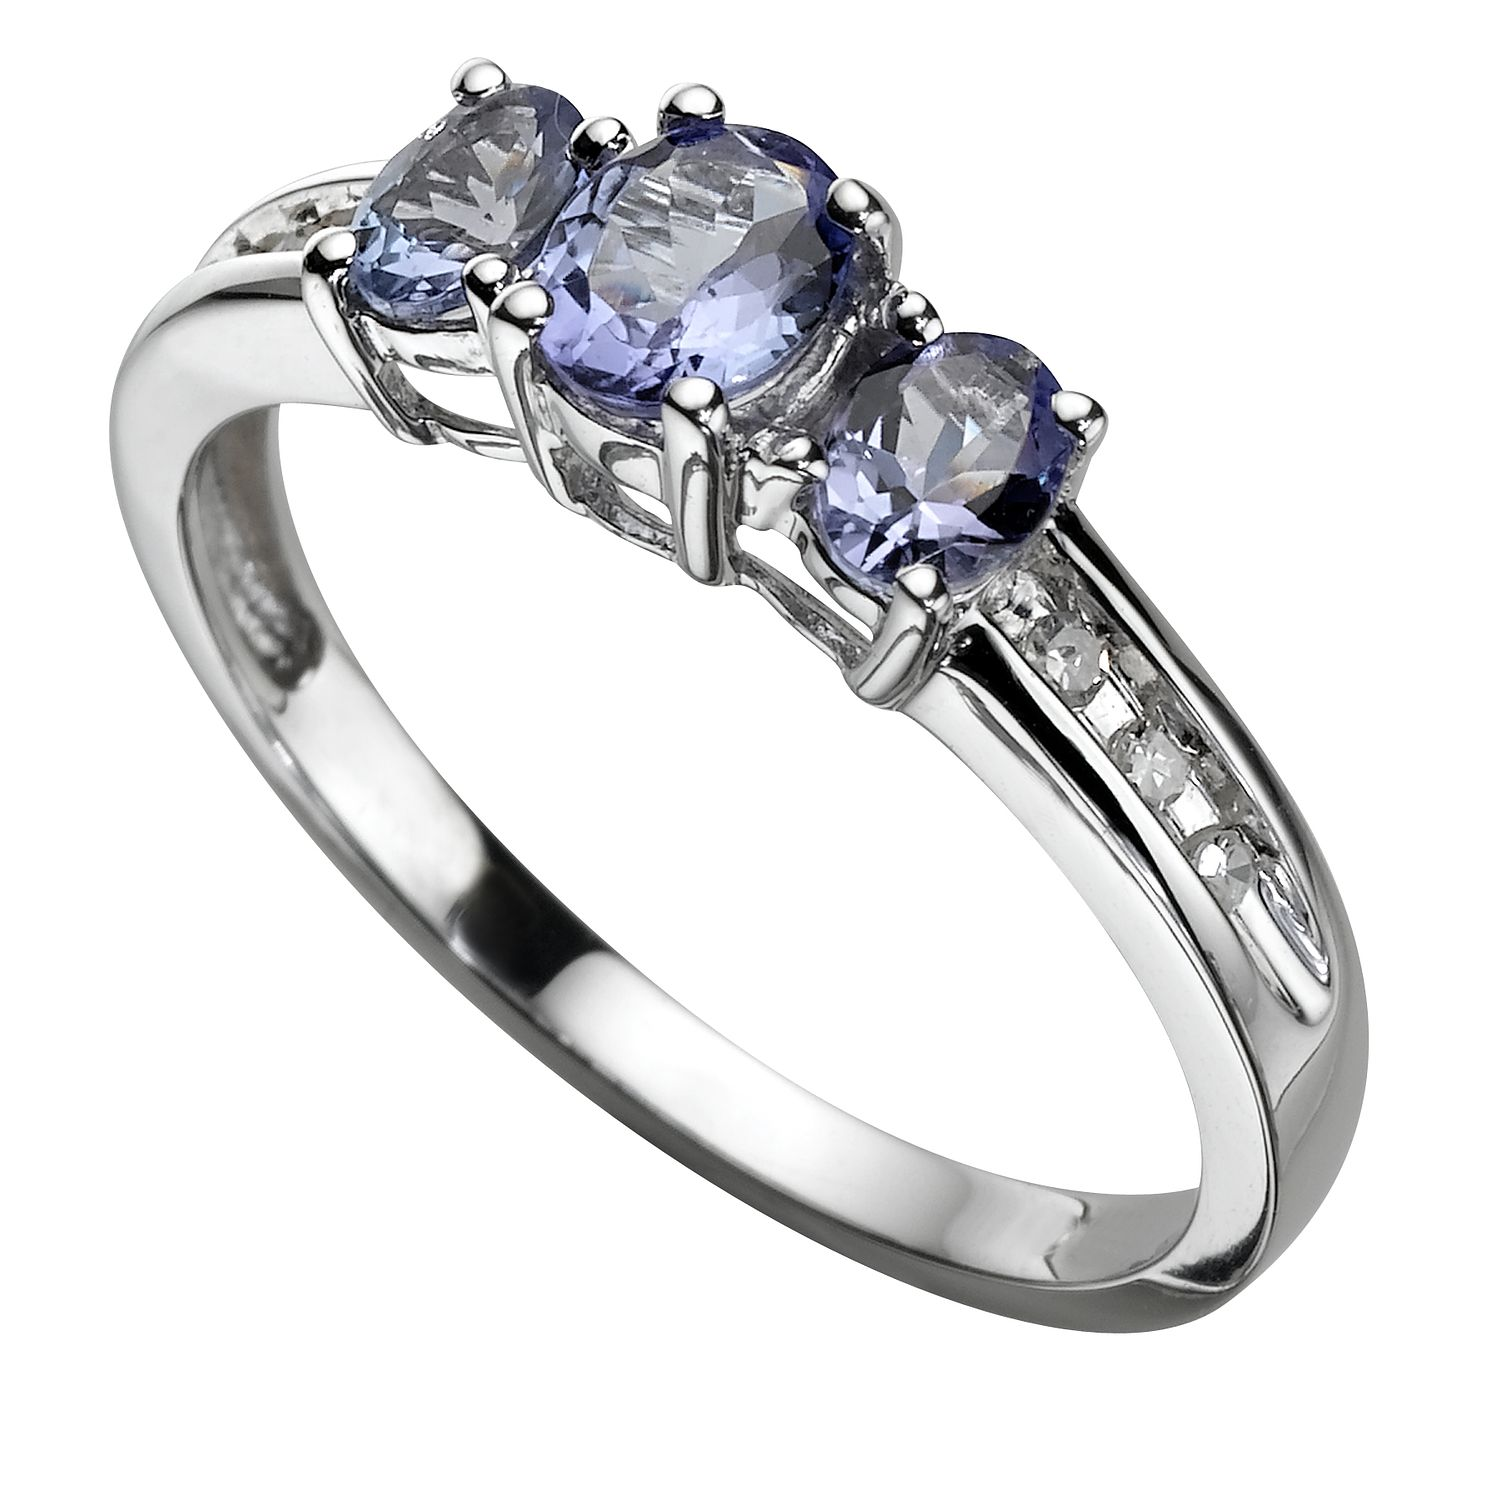 jewellery ring diana diamond with aaa wg inspired rings angara tanzanite halo princess natural